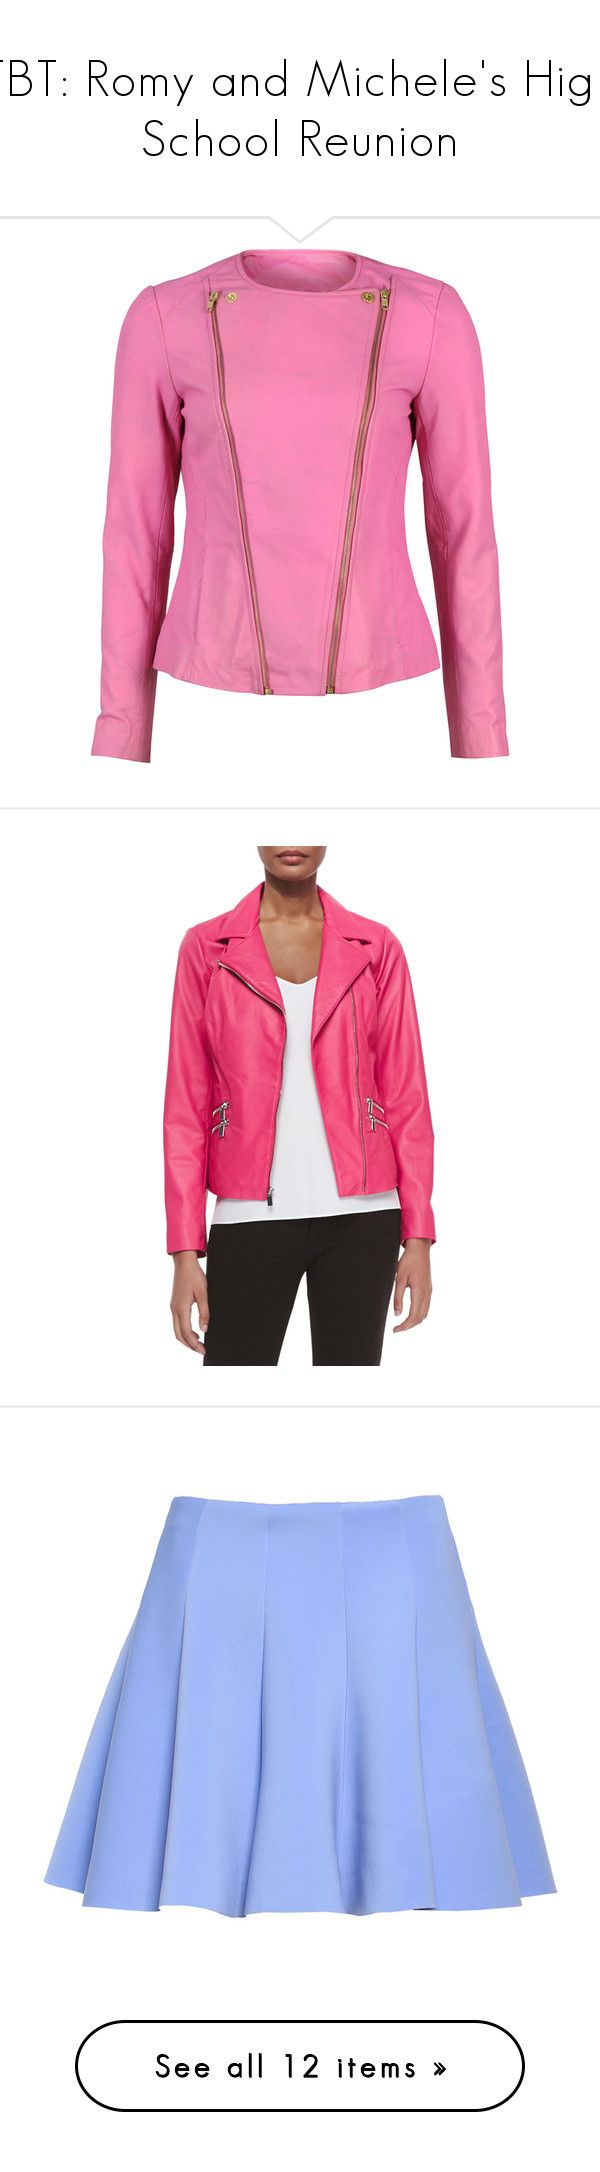 """""""TBT: Romy and Michele's High School Reunion"""" by polyvore-editorial ❤ liked on Polyvore featuring tbt, romyandmichele, Michele, Yves Saint Laurent, Ralph Lauren Collection, outerwear, jackets, pink, lightweight military jacket and collarless leather jacket"""